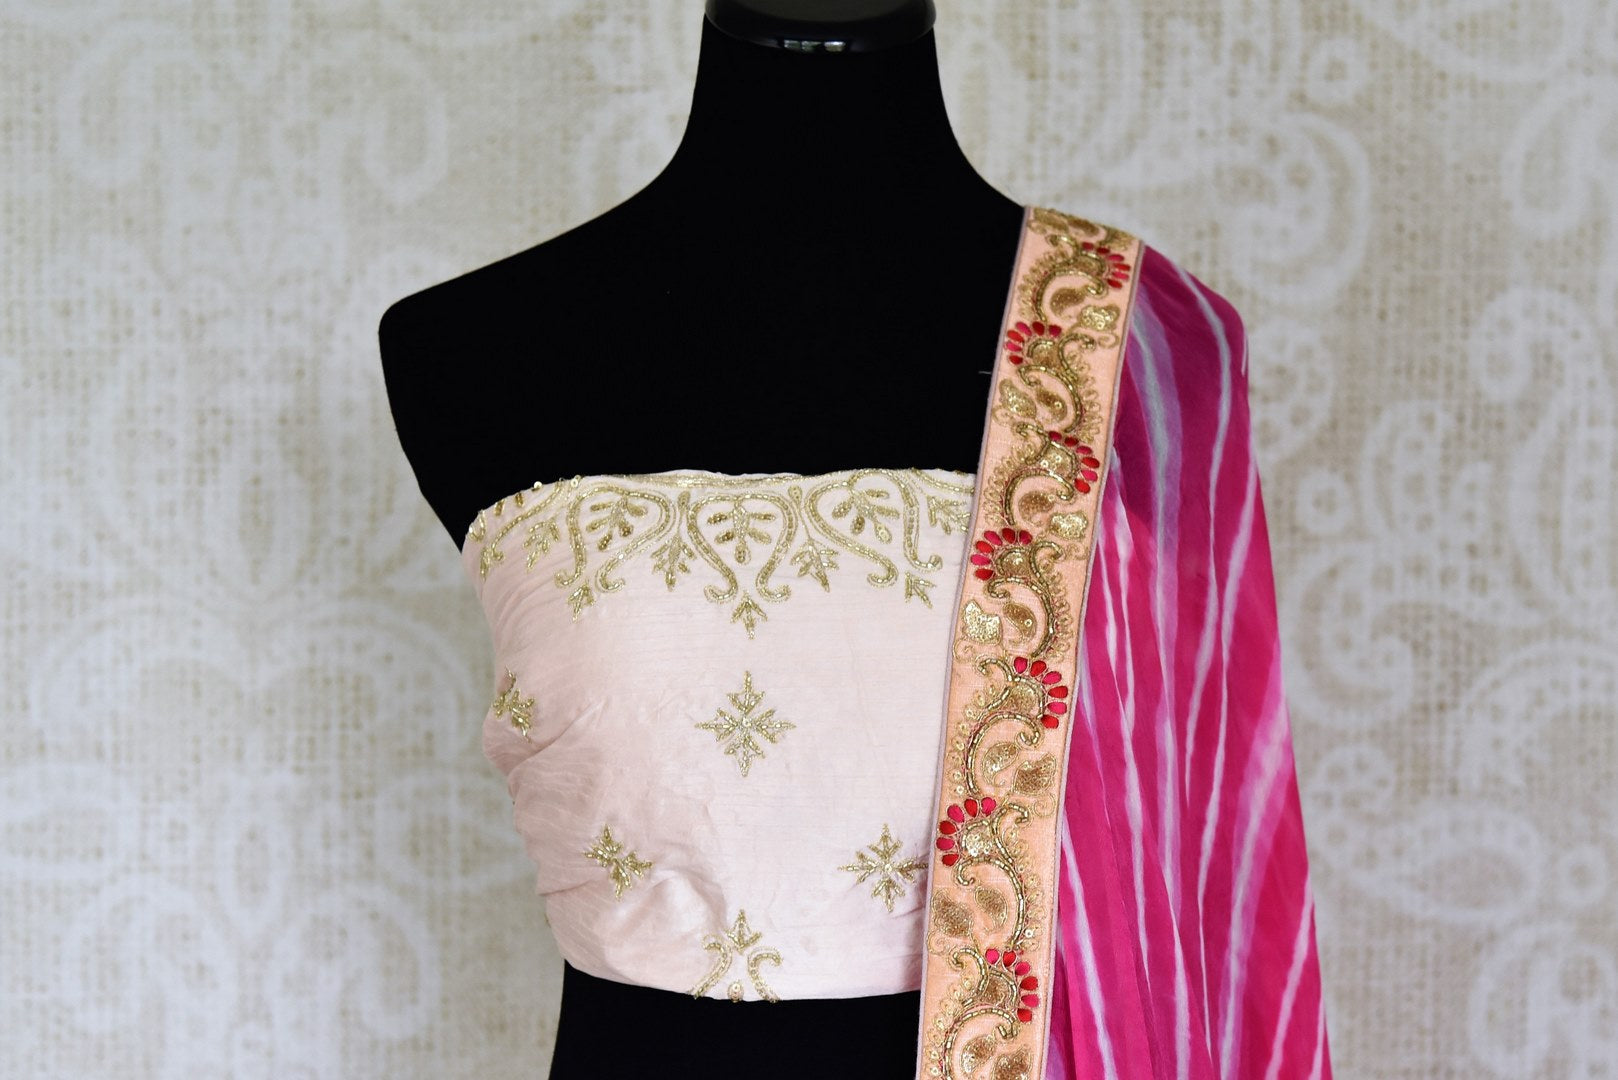 Shop off-white embroidered Banarasi lehenga online in USA with pink dupatta. Get ready to dazzle on weddings and special occasions with an exquisite variety of Indian designer clothes from Pure Elegance Indian clothing store in USA. We have a splendid collection of bridal lehengas, designer sarees, Anarkali suits to make your look absolutely one of kind.-front